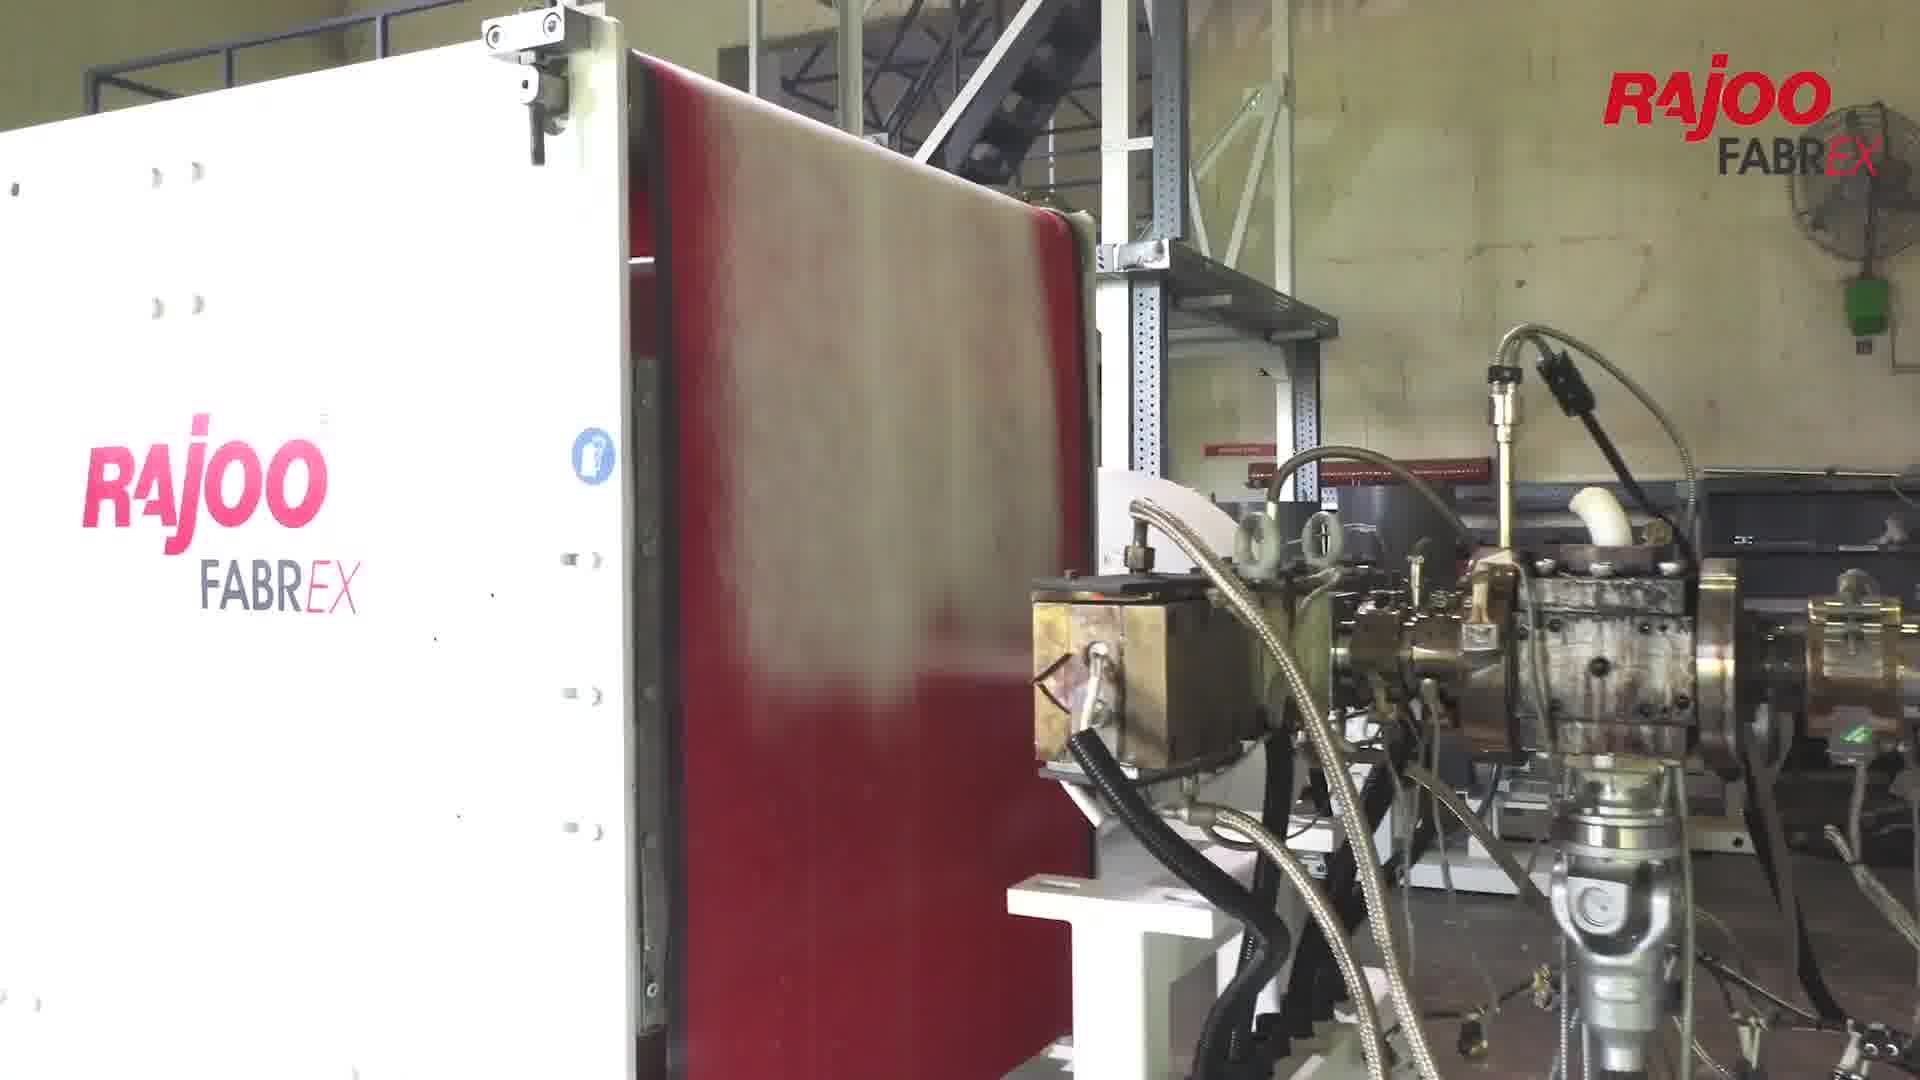 Our Grandiose Melt Blown Fabric making Machine, FABREX in action.  FabrEX® nonwoven lines are designed and manufactured targeting various applications to provide specific functions such as absorbency, liquid repellence, resilience, stretch, softness, strength, flame retardant, washable, cushioning, filtering, use as a bacterial barrier, and sterility. These properties are often combined to create fabrics suited for specific applications while achieving a good balance between product use-life and cost. They mimic the appearance, texture, and strength of a woven textile or polymer fabric and can be as bulky as the thickest padding. In combination with other materials, they provide a spectrum of products with diverse properties and are used alone or as components of apparel, home furnishings, health care, engineering, industrial, and consumer goods.  #RajooEngineers #Rajkot #PlasticMachinery #Machines #PlasticIndustry